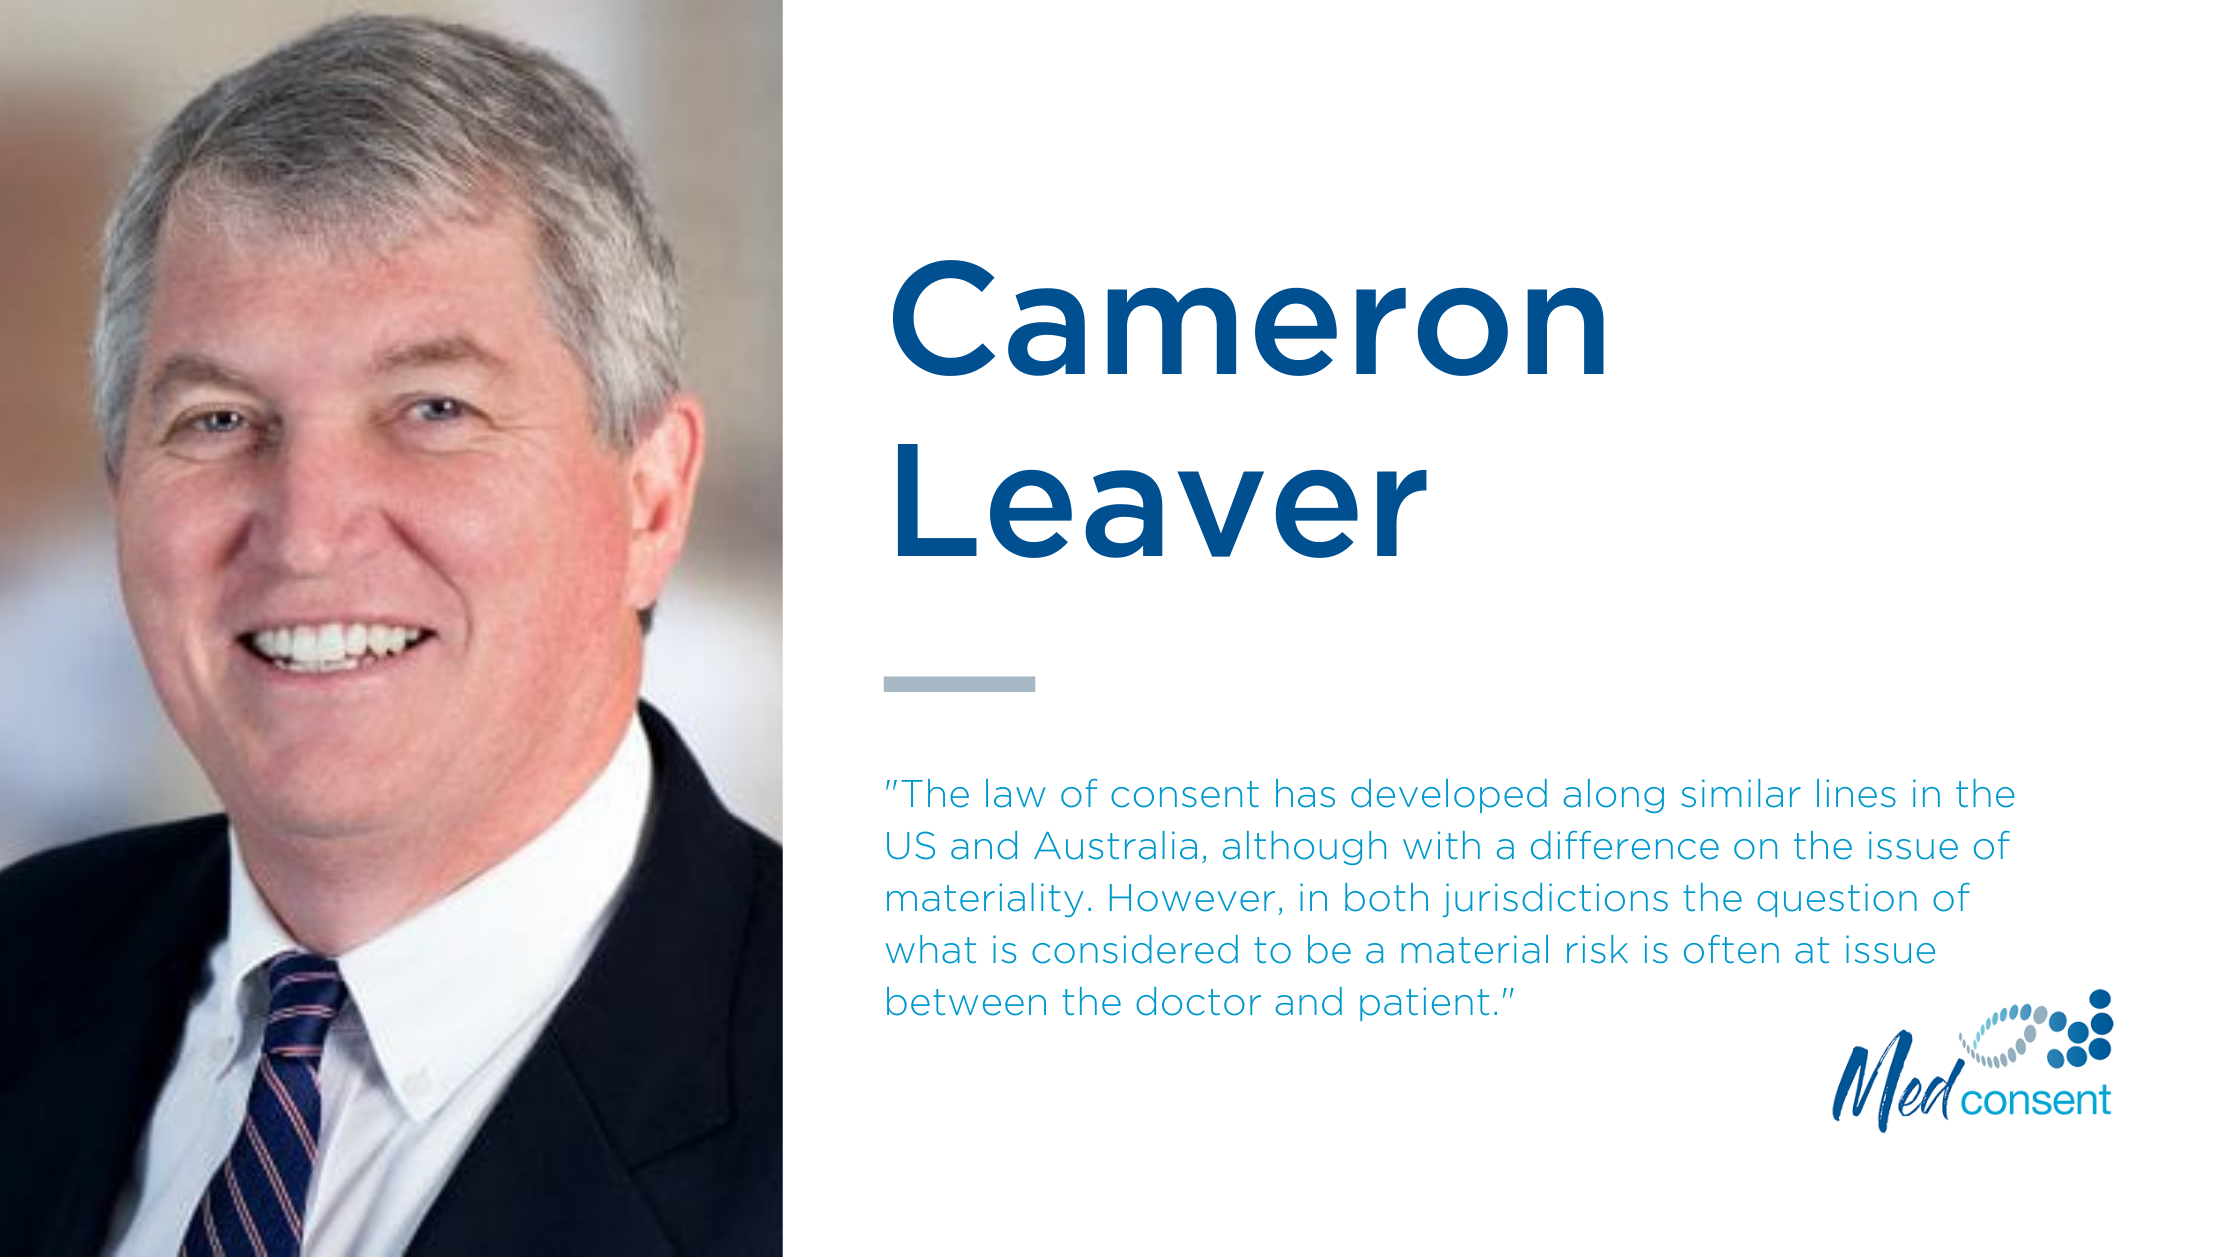 Cameron Leaver and the law of consent